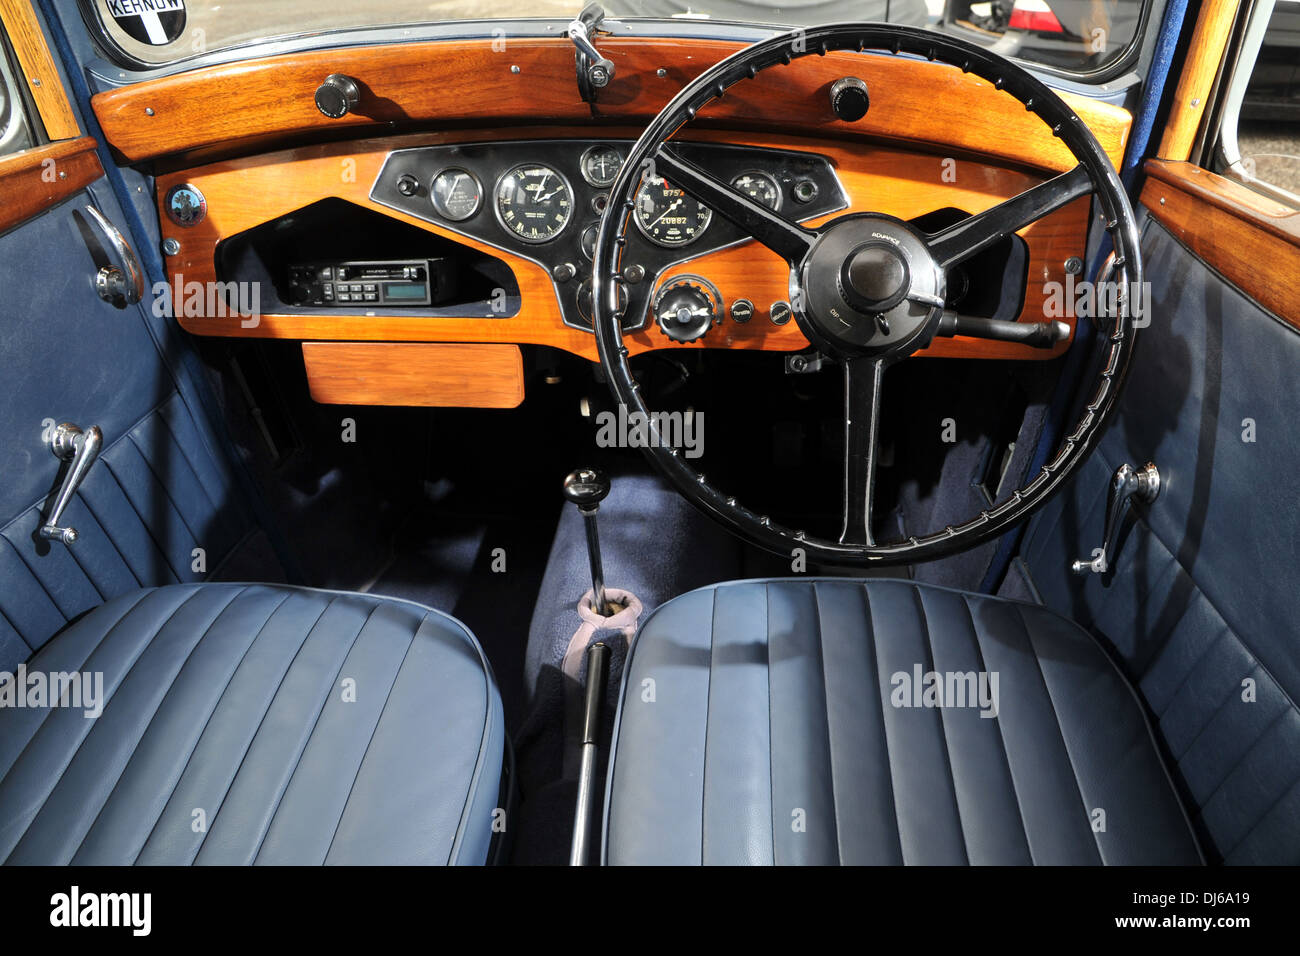 rover 10 sports tourer 1930s classic british car interior stock photo 62834501 alamy. Black Bedroom Furniture Sets. Home Design Ideas